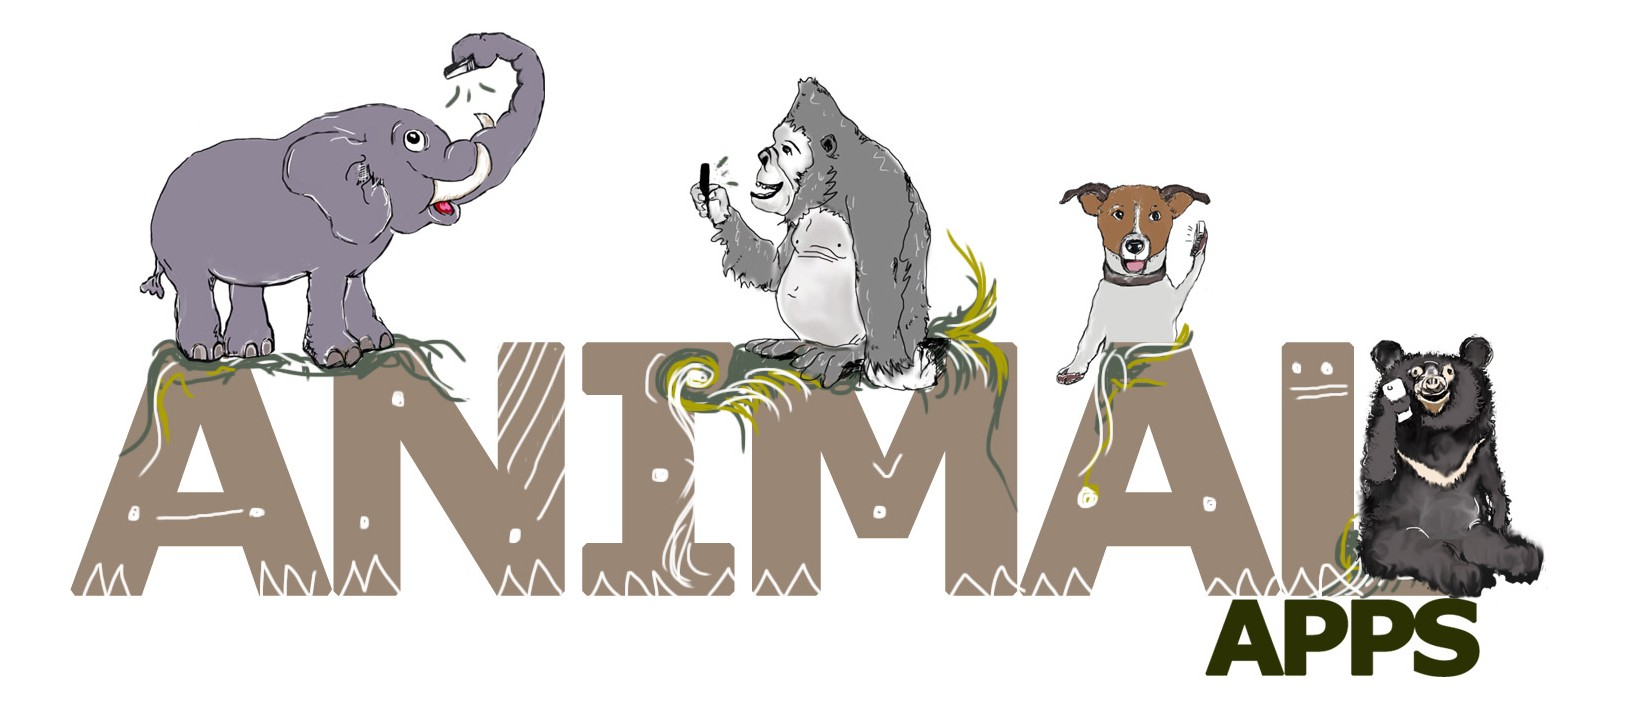 image of animal apps logo http://www.animalapps.co.uk